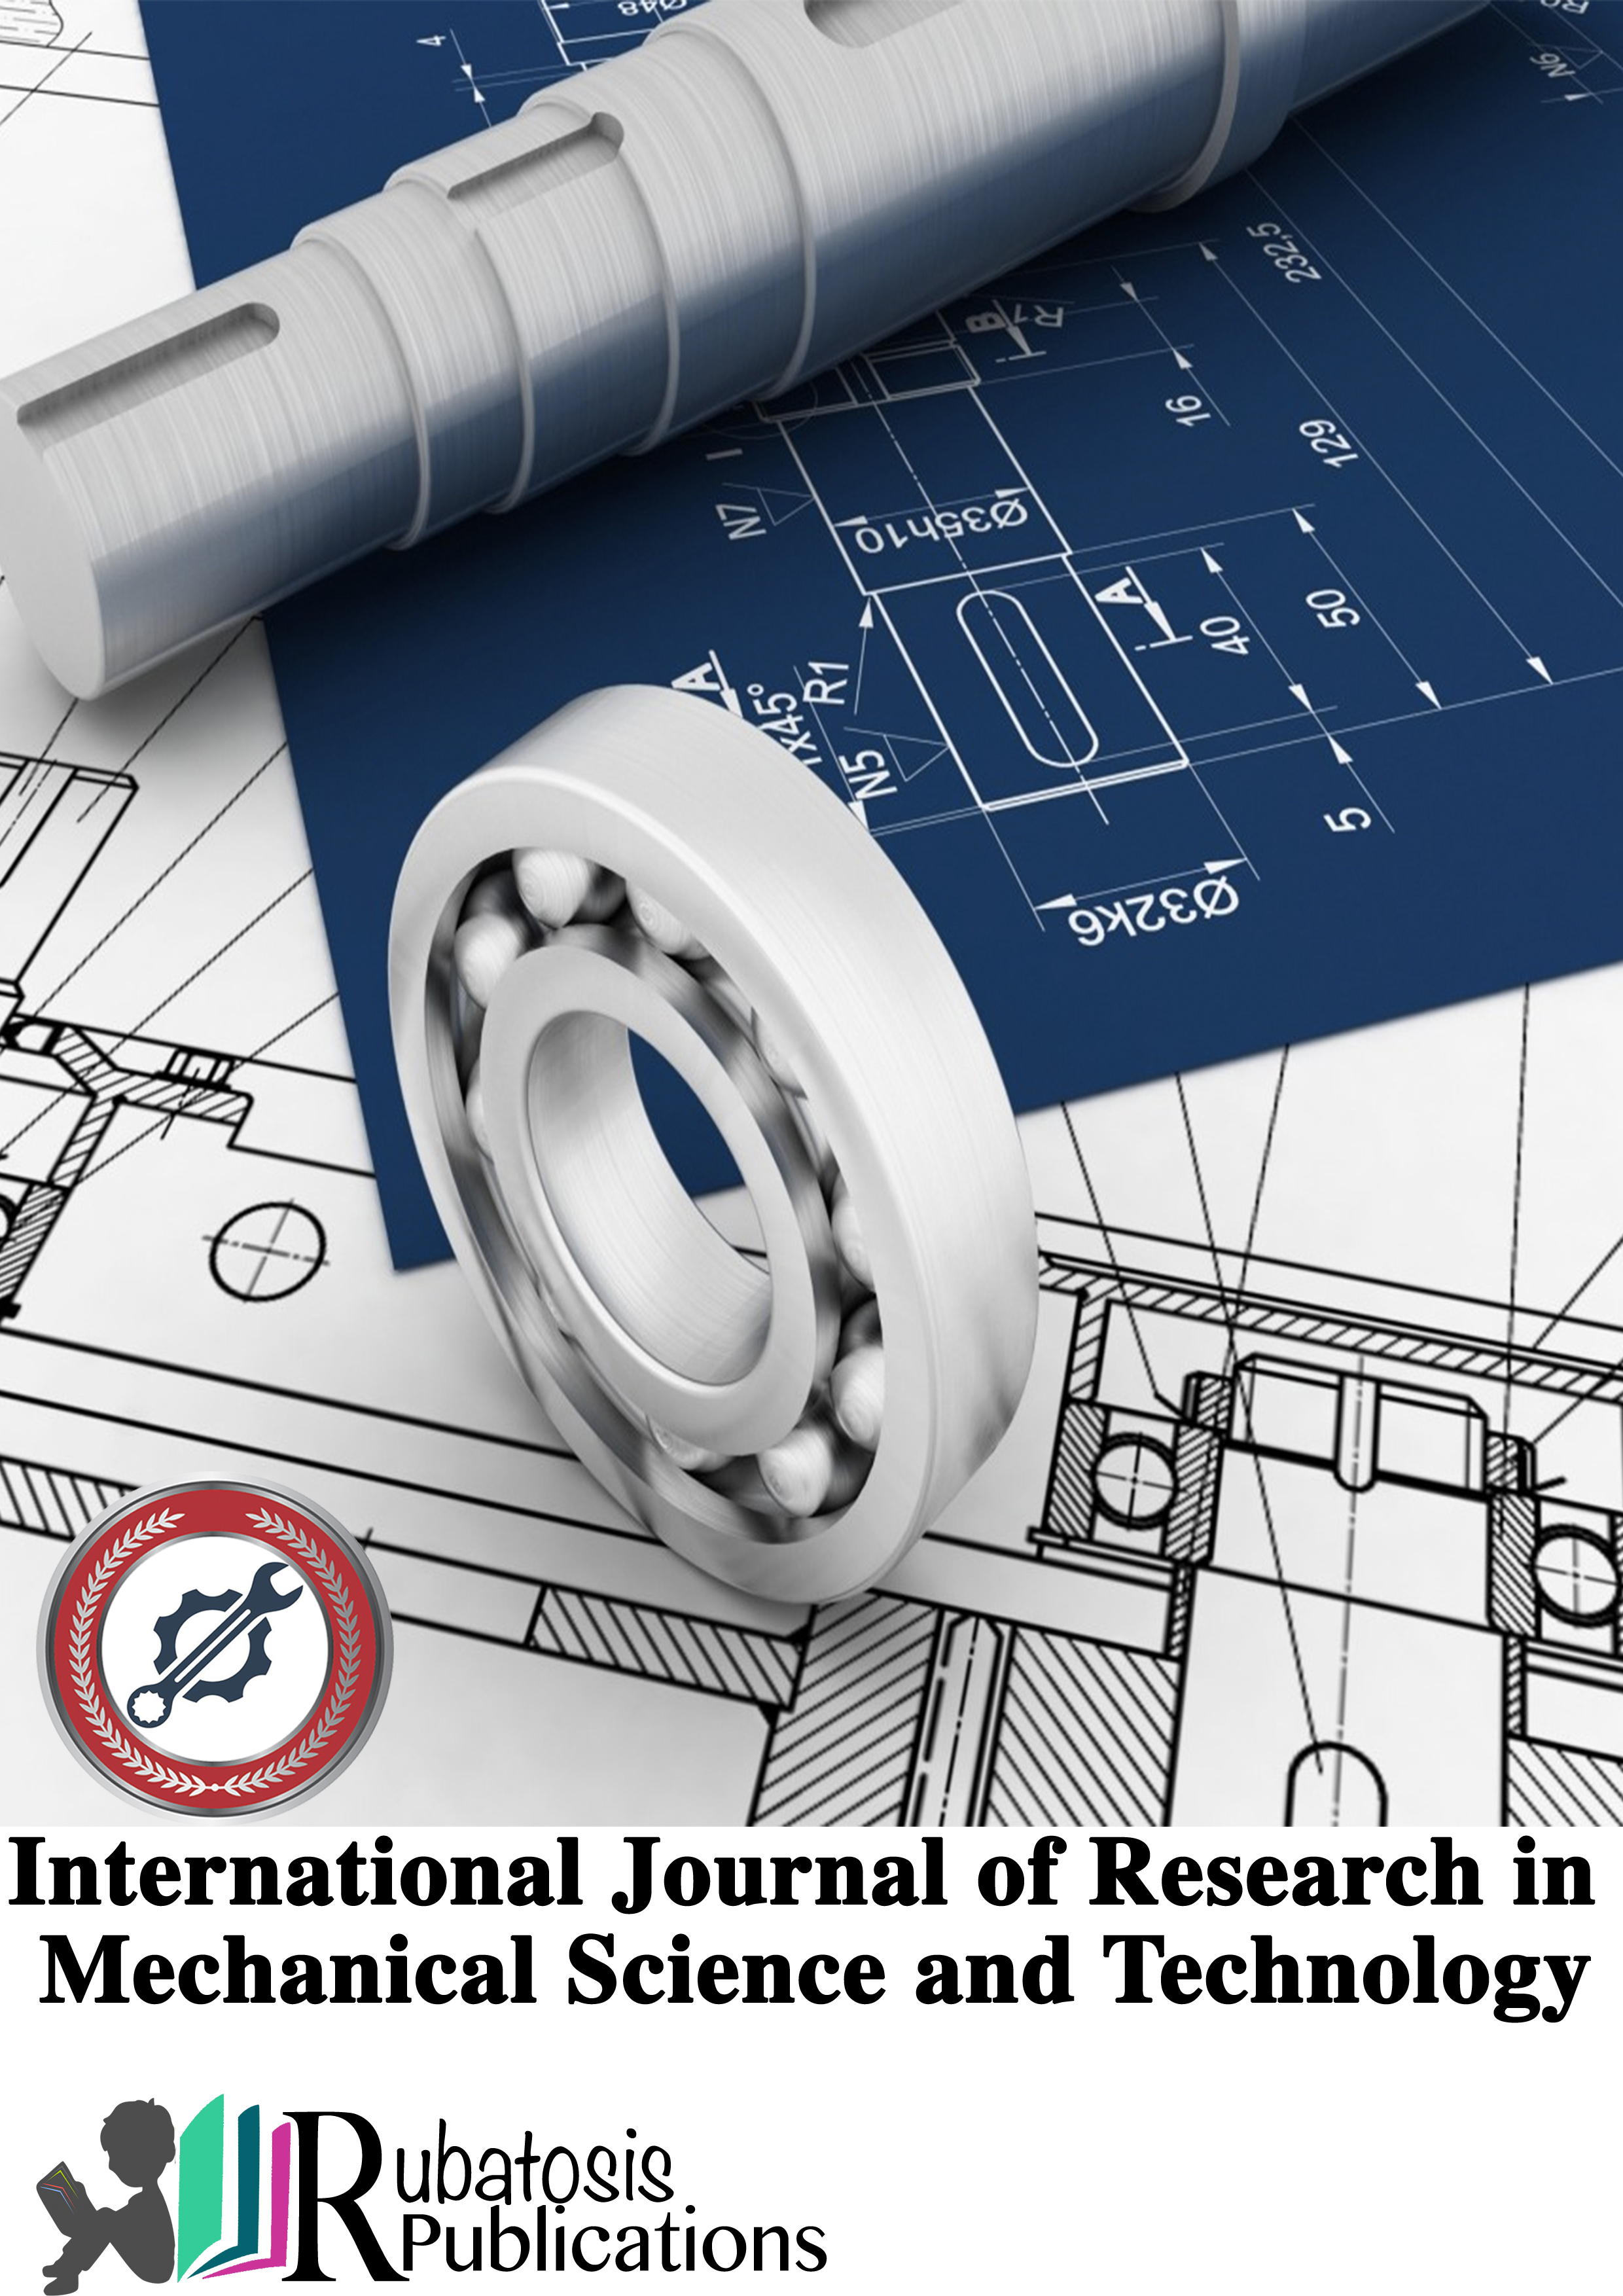 International Journal of Research in Mechanical Science and Technology